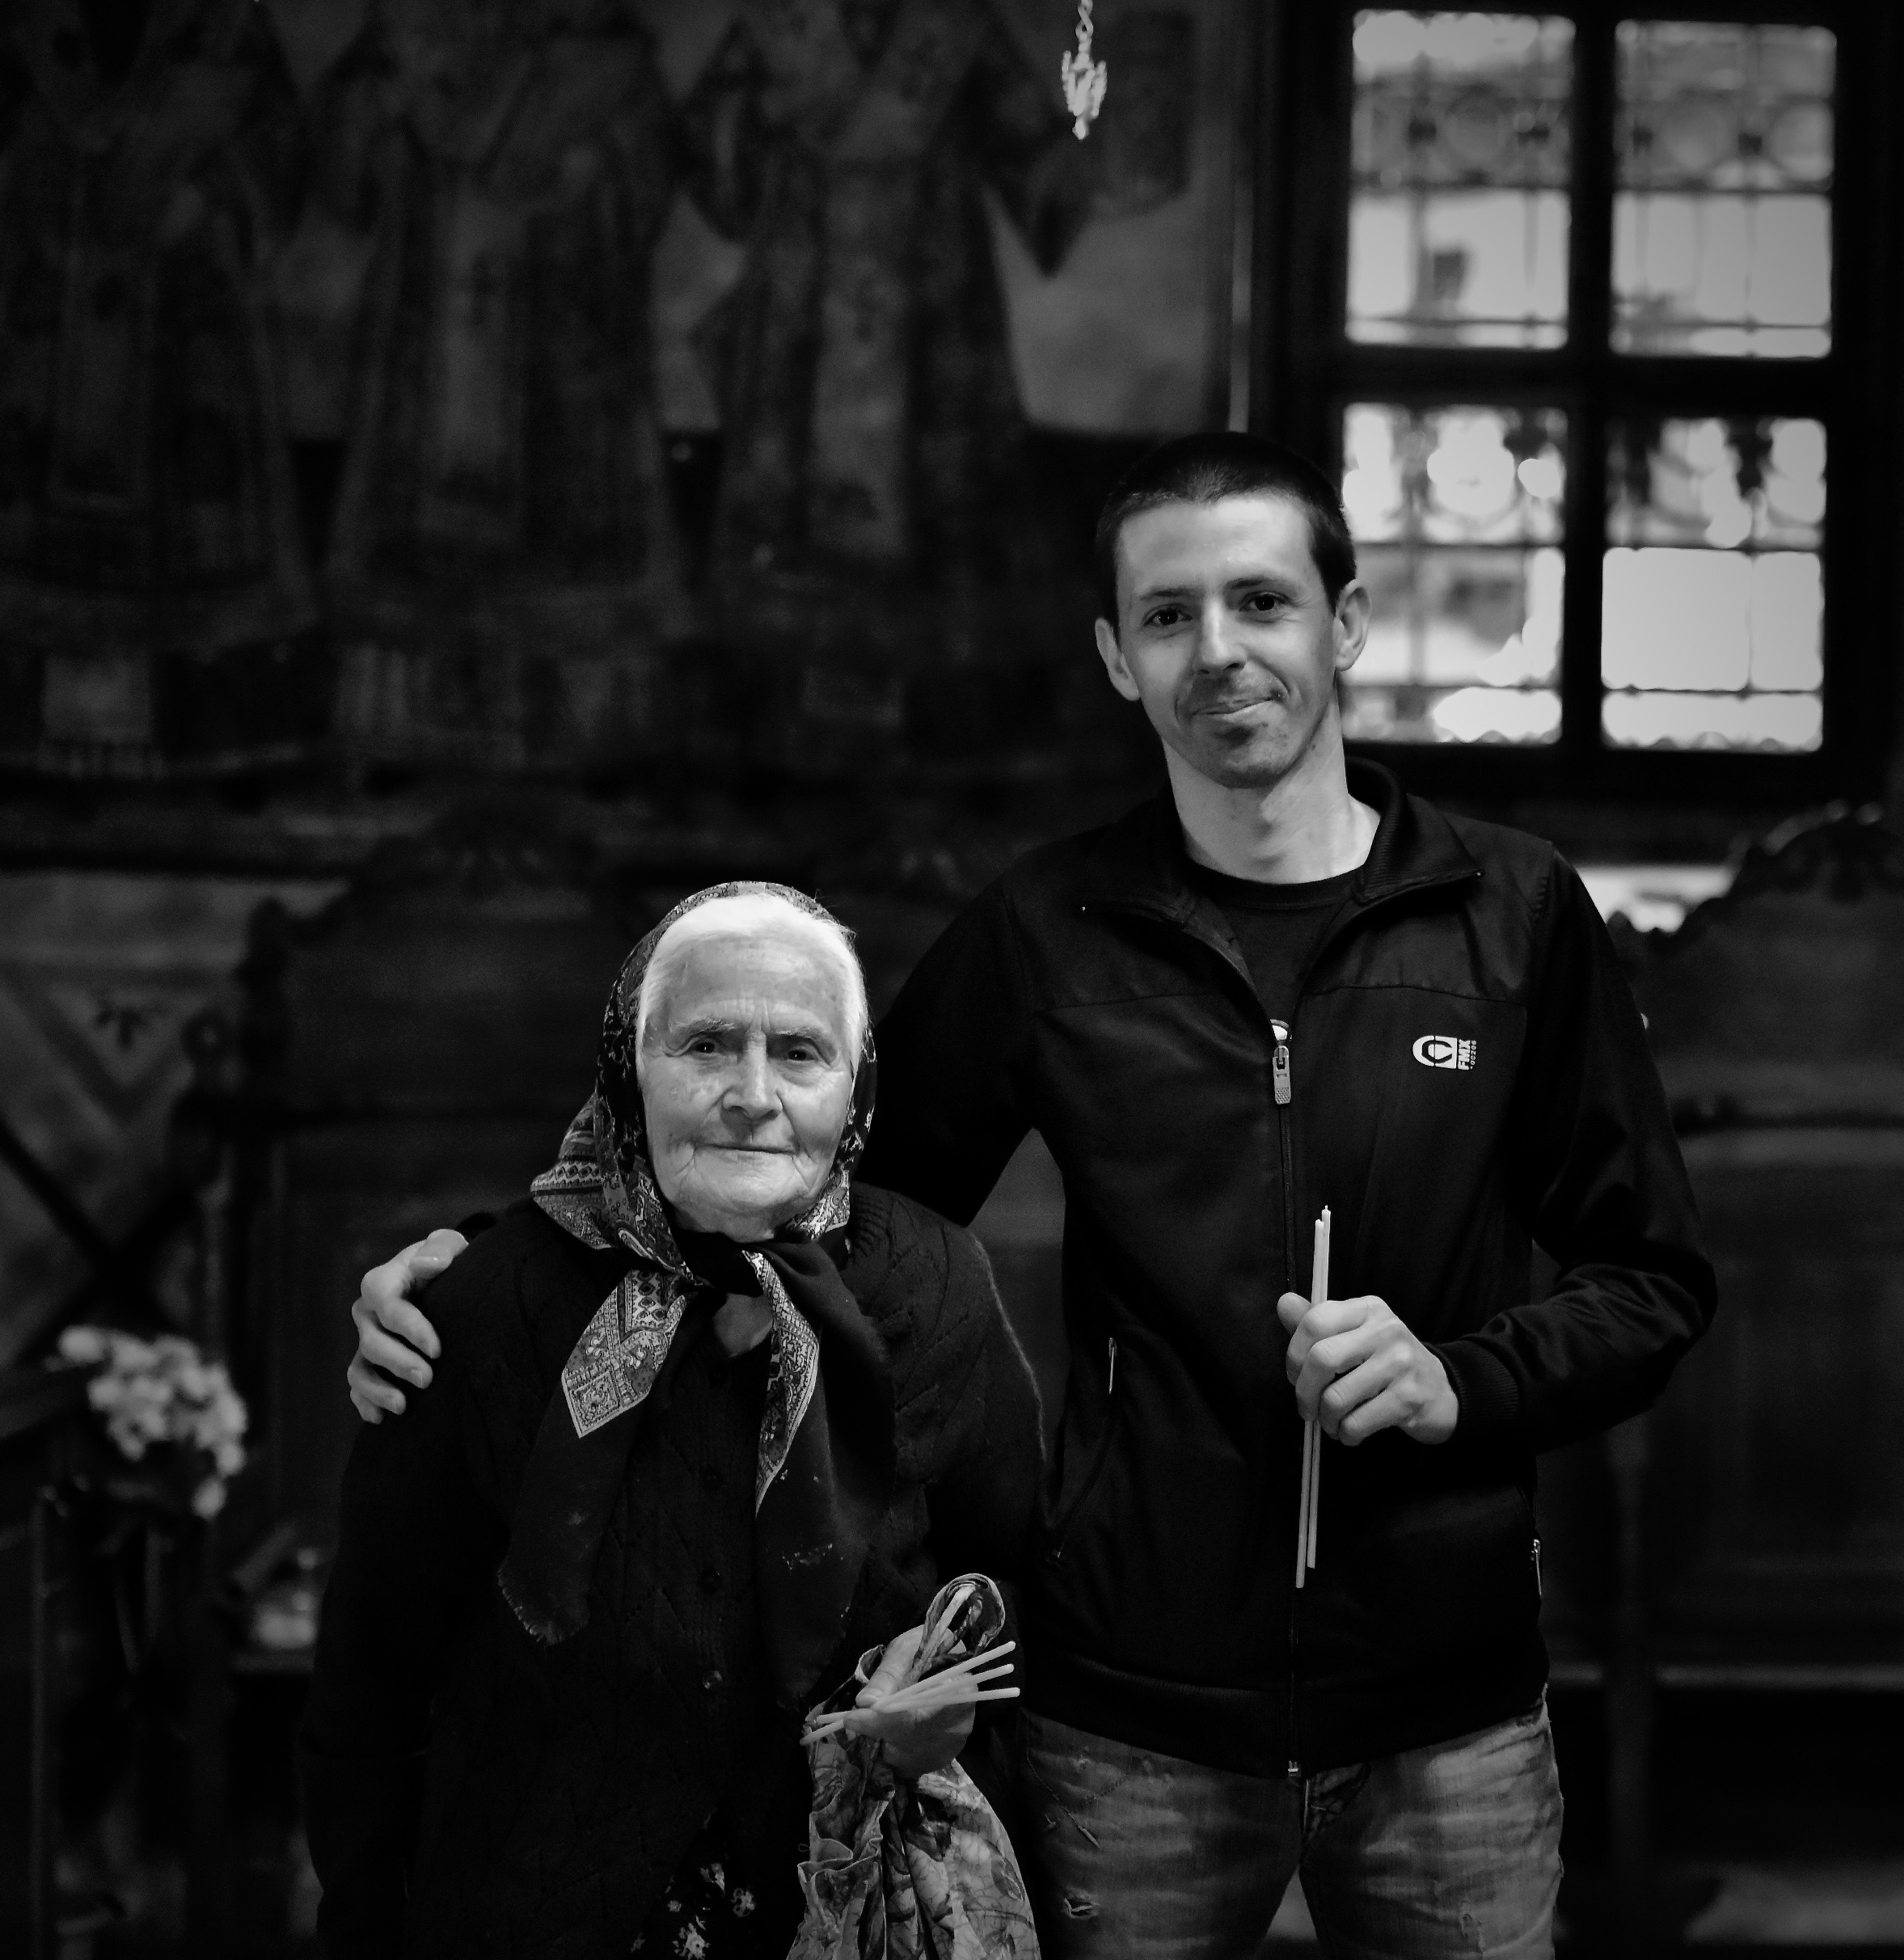 oldandyoung-mother-grandmother-son-church-blackandwhite-troyan-monastery-northloop-phototour-bulgaria-alison-2017-MKH7797.jpg